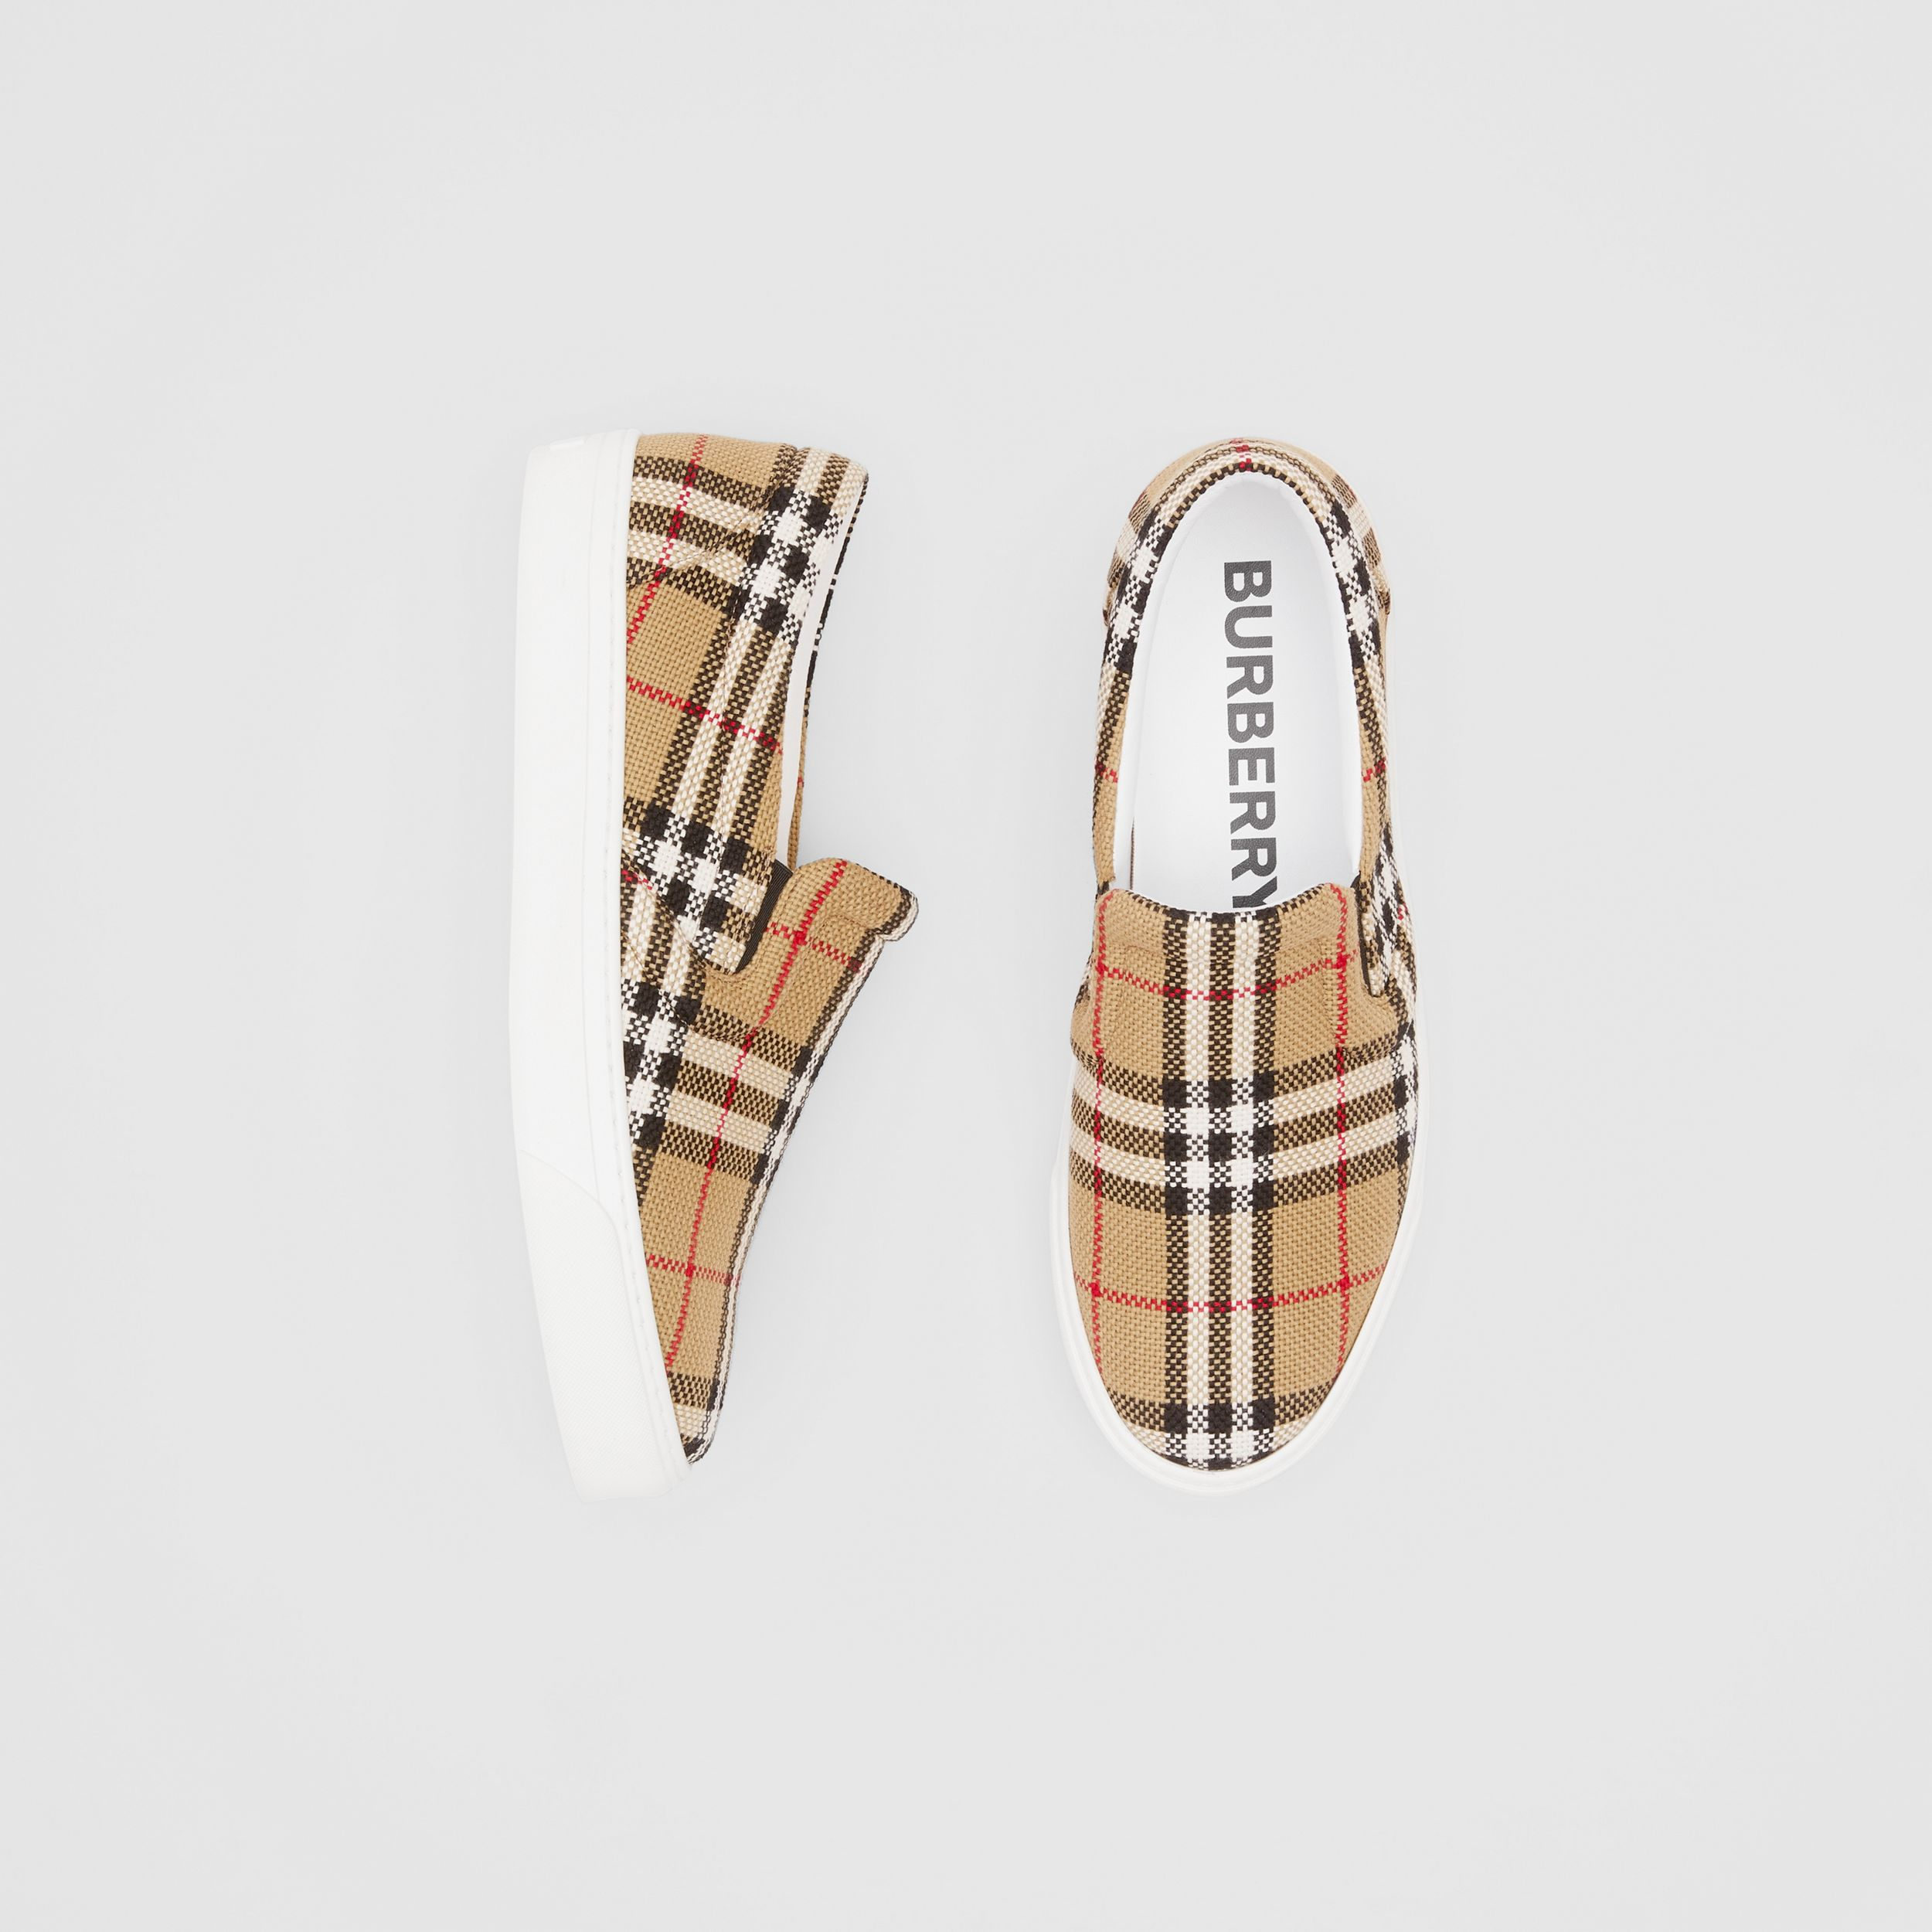 Bio-based Sole Latticed Cotton Slip-on Sneakers in Archive Beige - Men | Burberry Singapore - 1